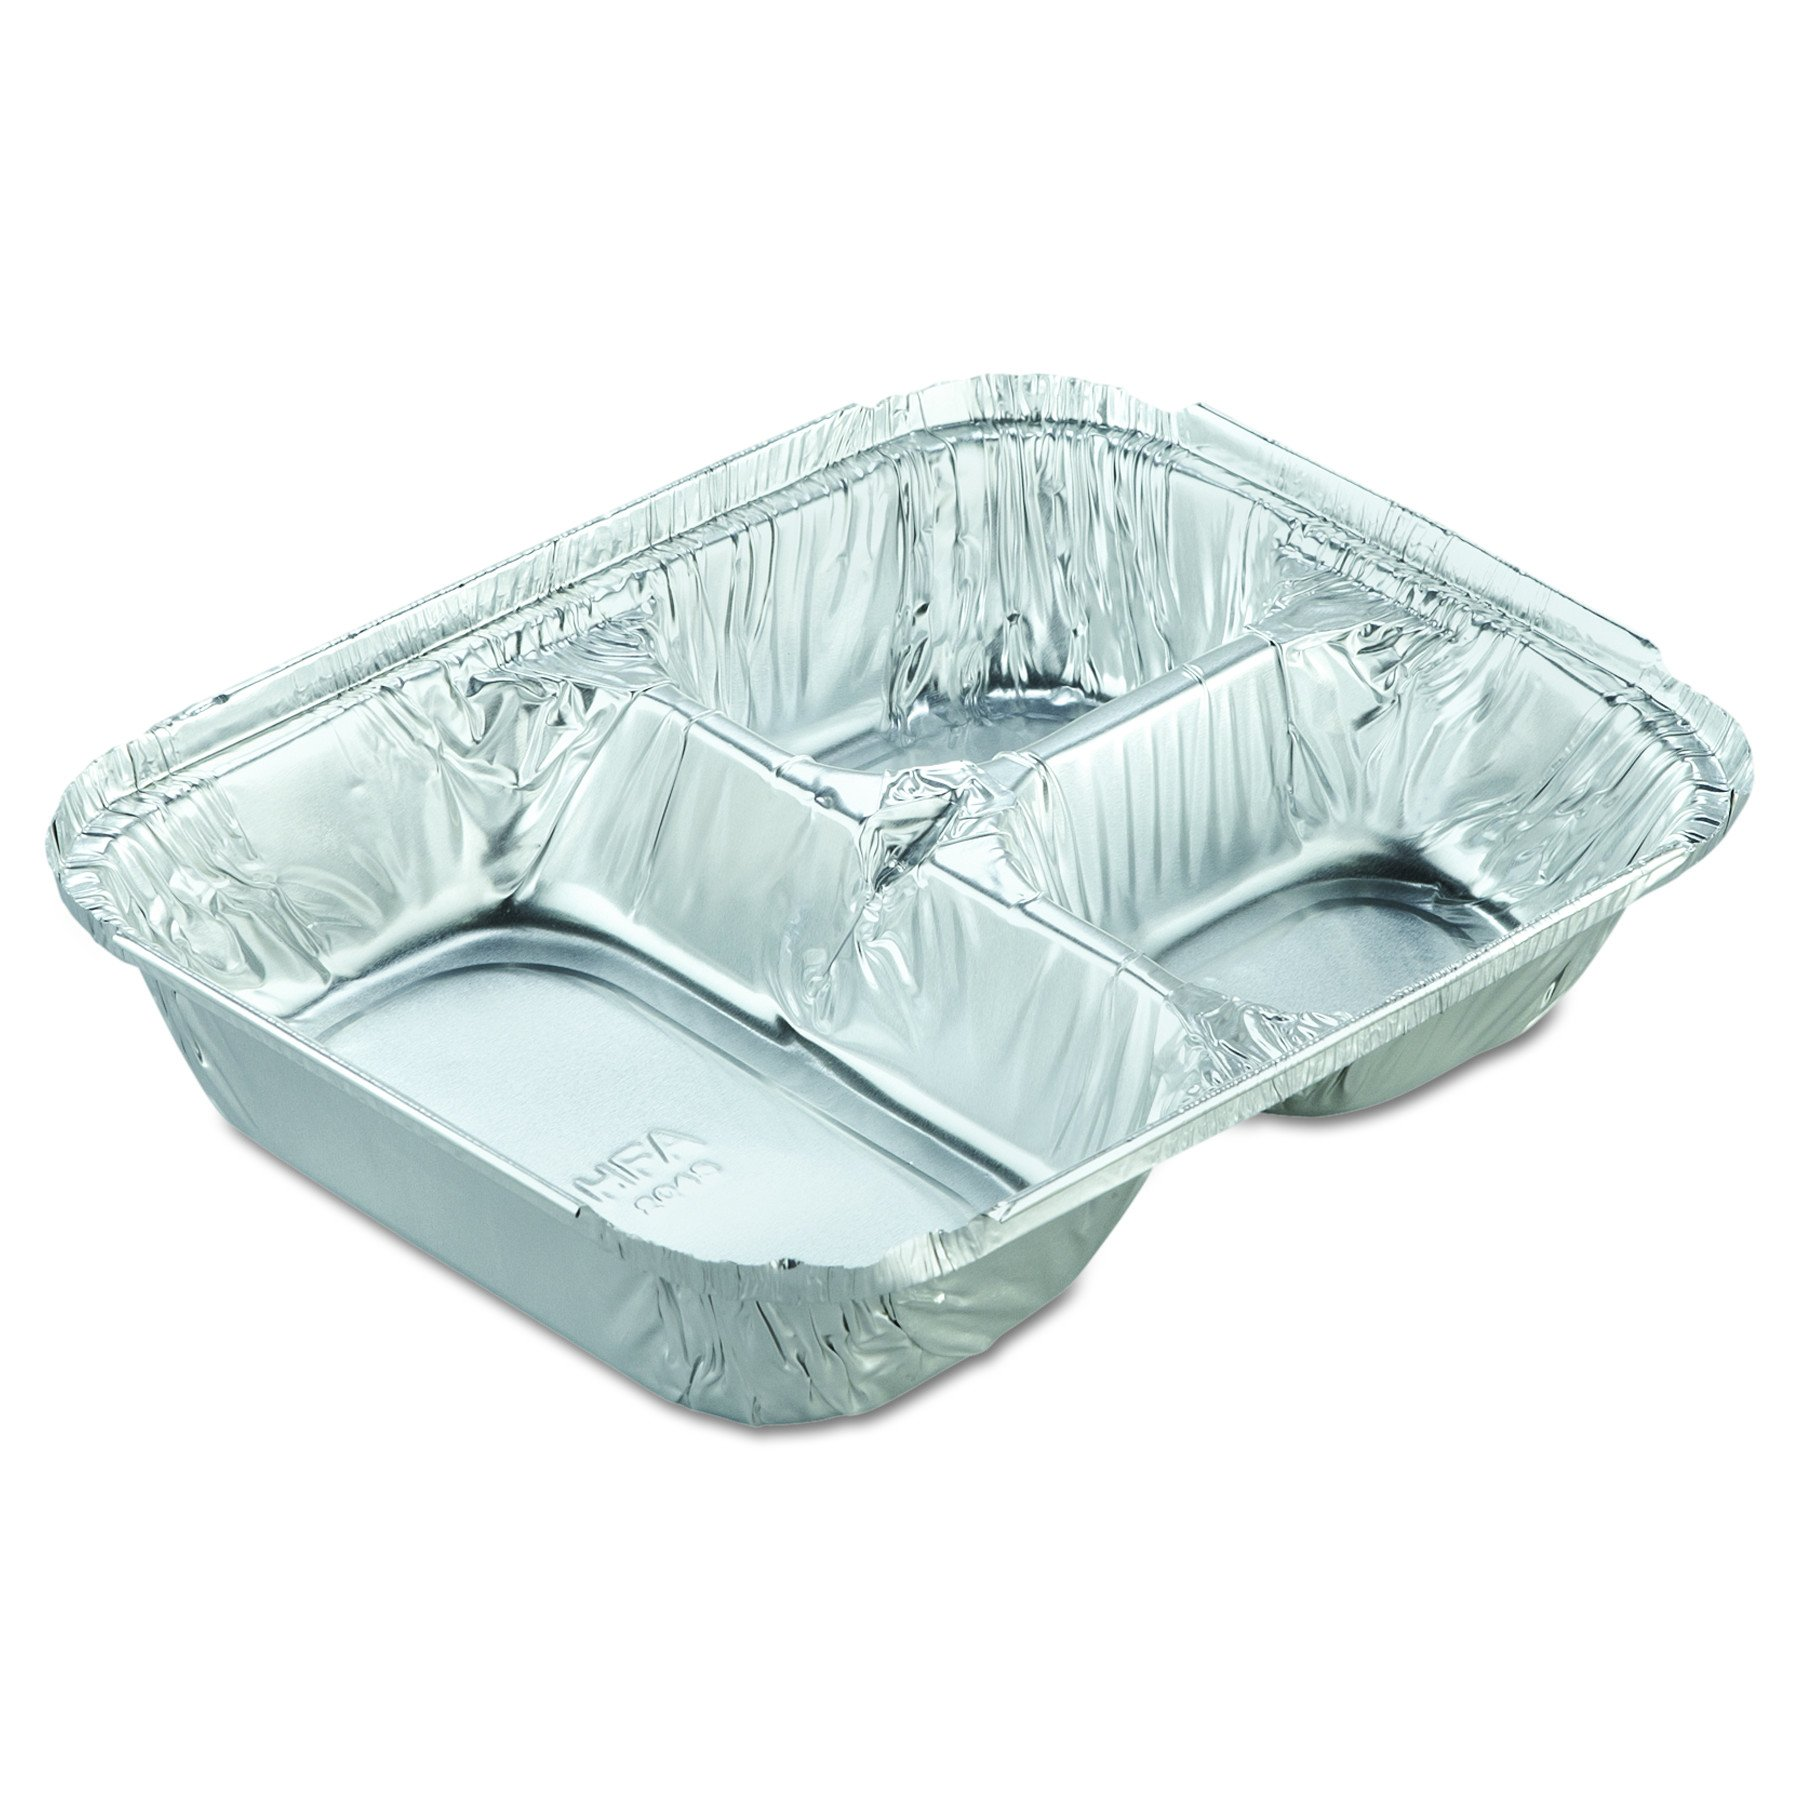 Handi-Foil of America 204535250W Aluminum Oblong Container with Lid, 3-Compartment, 24 Oz Capacity, 8 1/2w x 6 3/8d x  1 15/32h (Case of 250)